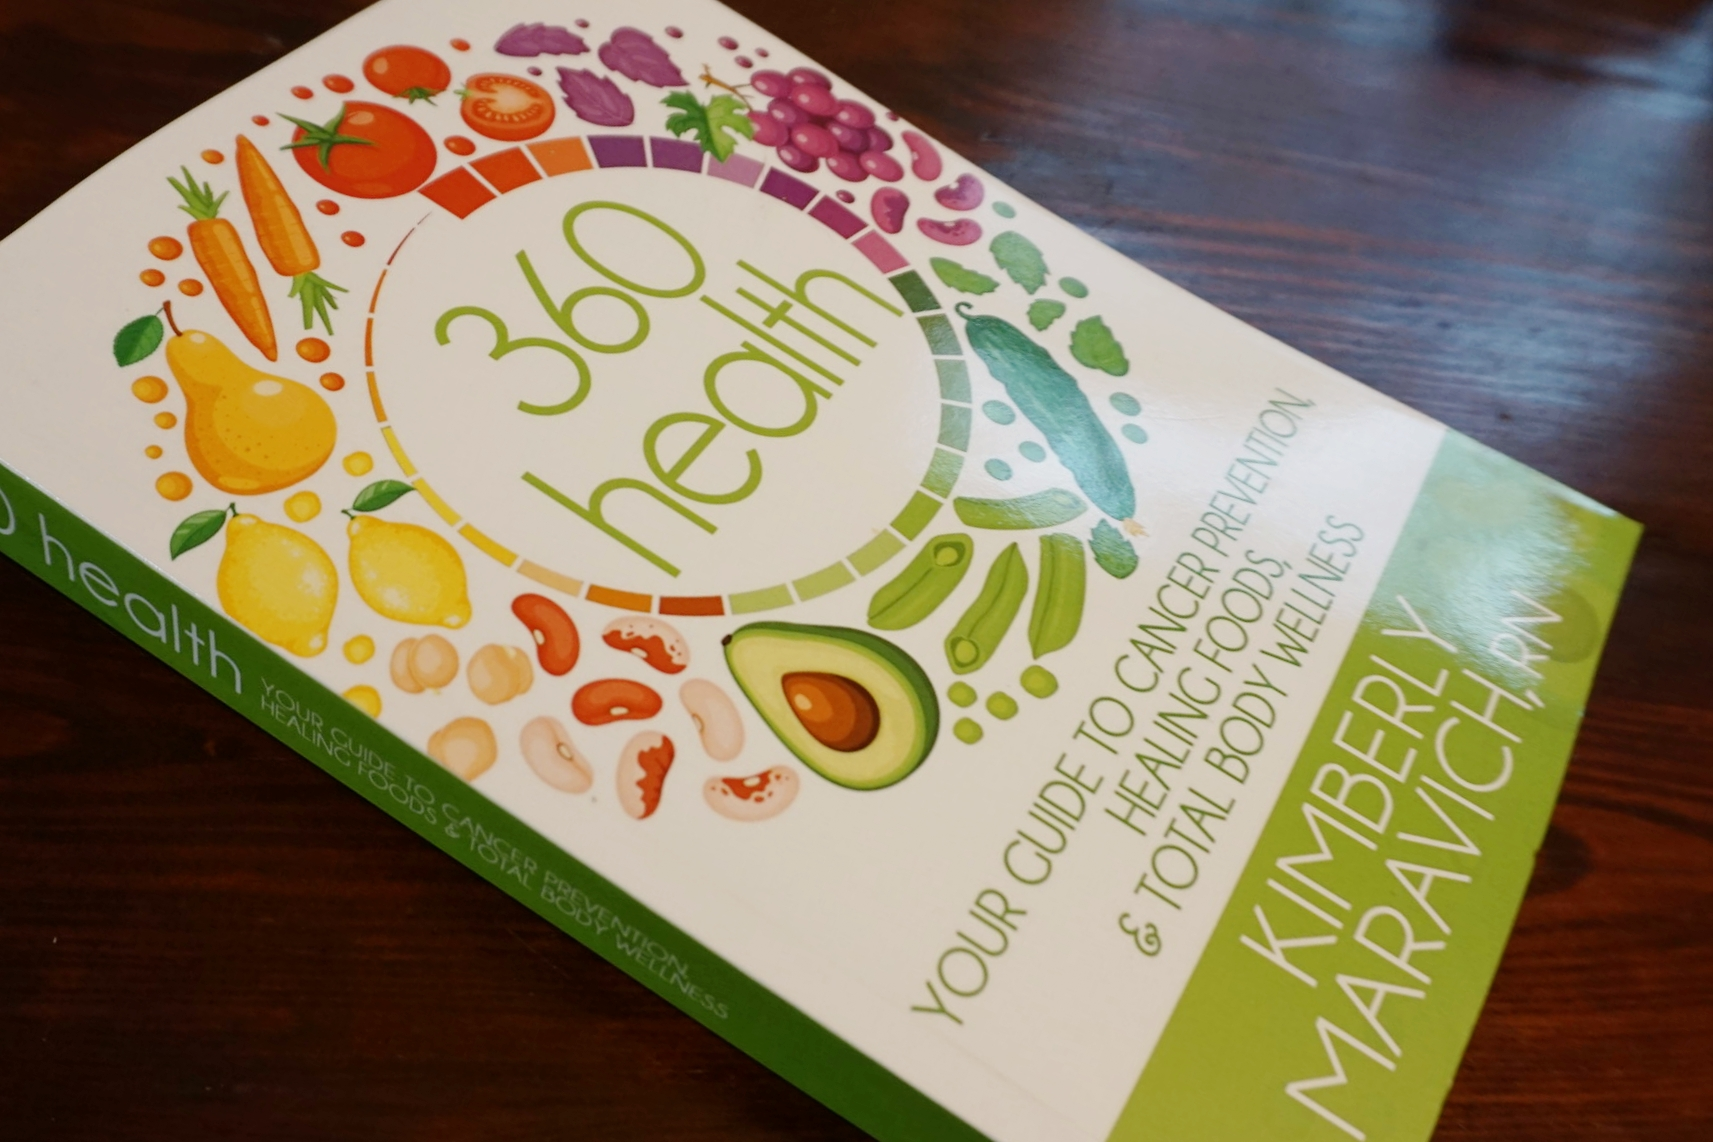 Wellness book on nutrition, disease prevention, supplements, weight loss, exercise, sleep, detoxification.